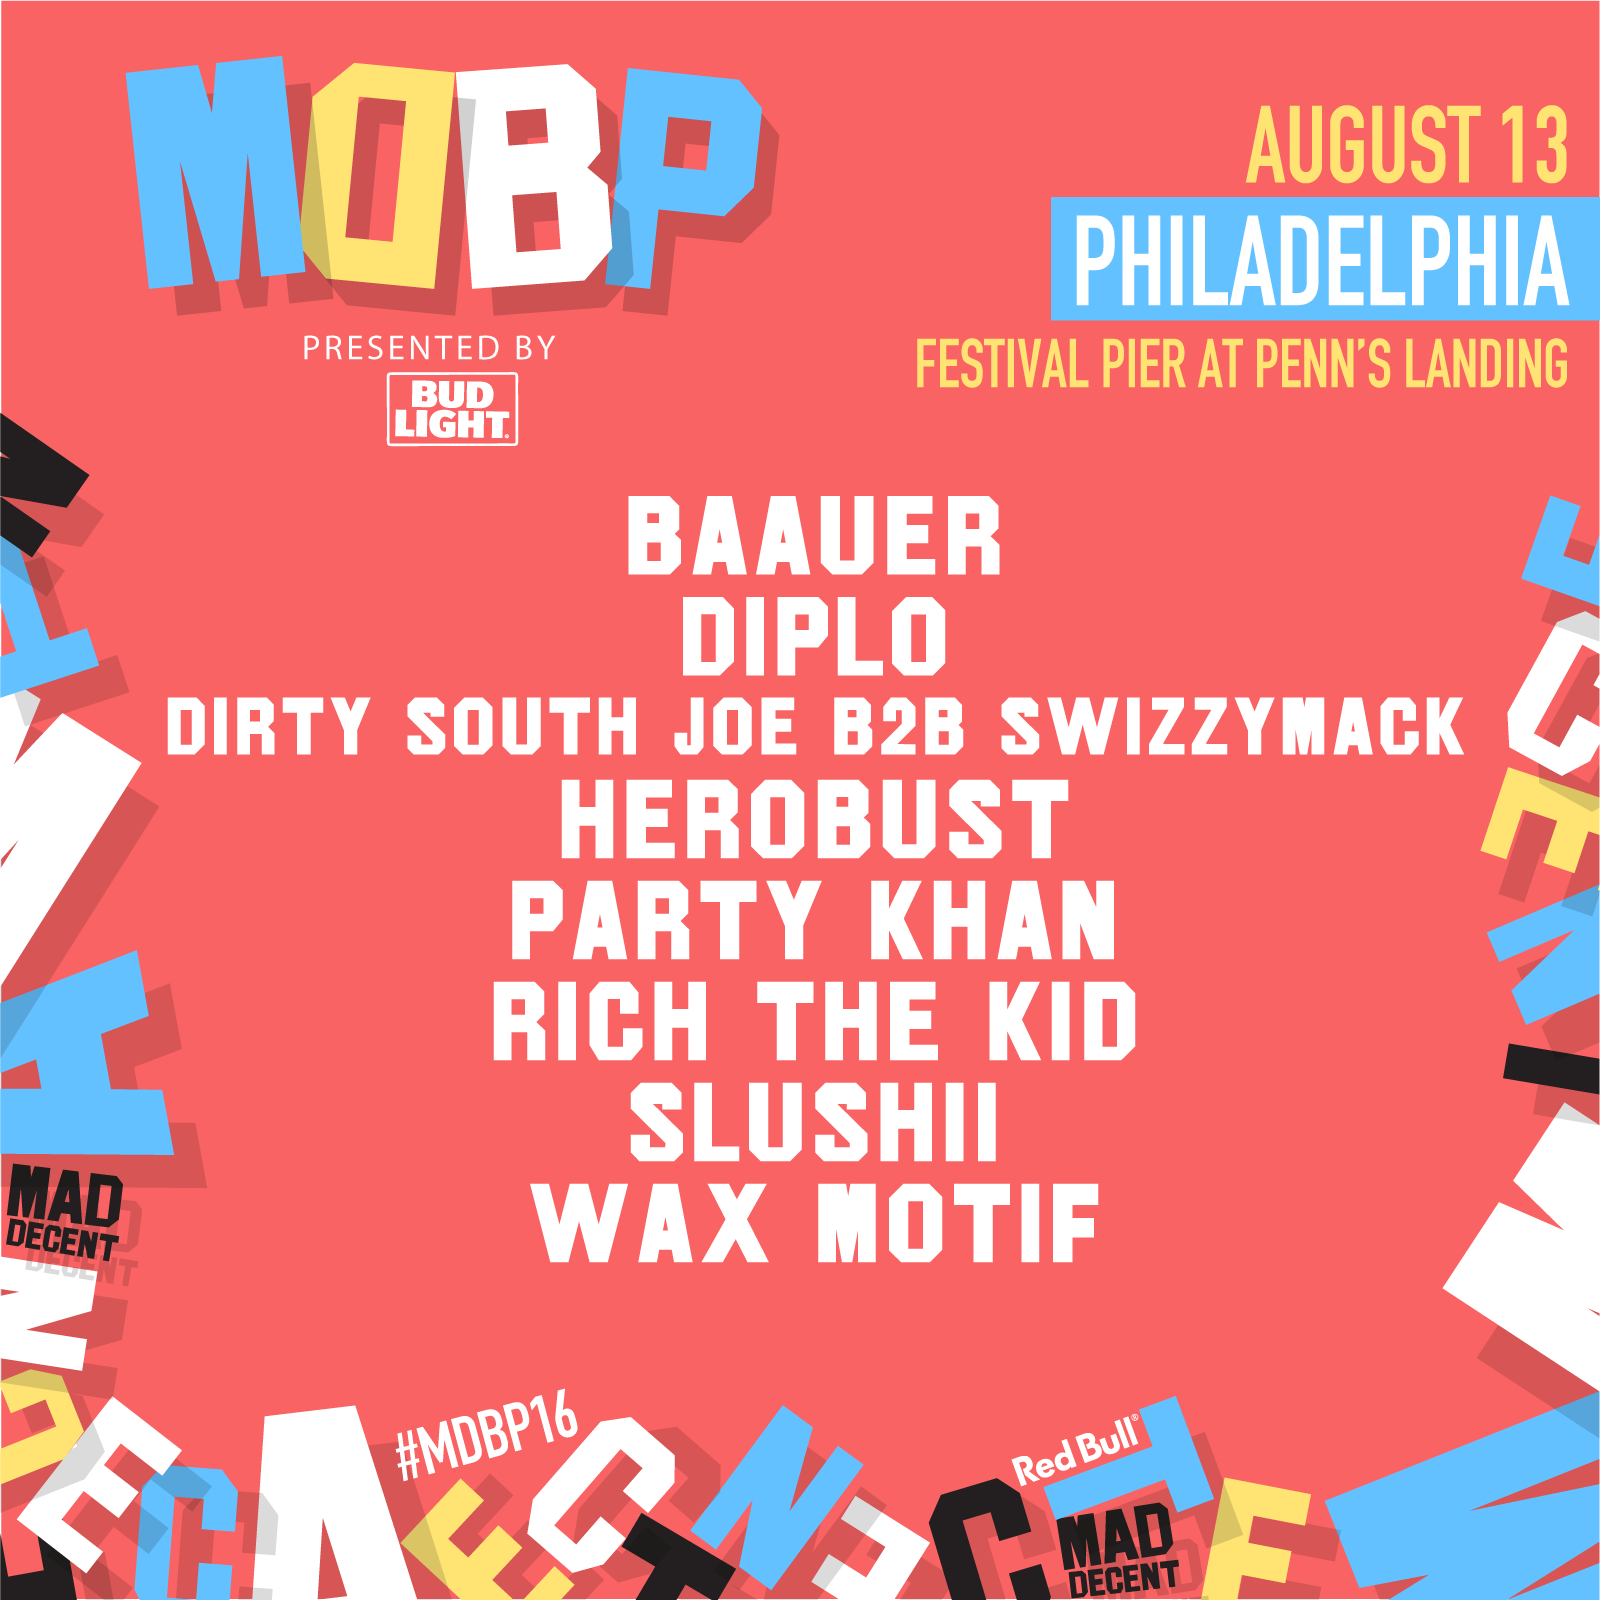 8.13 - Philly MDBP - 7.22 Announce